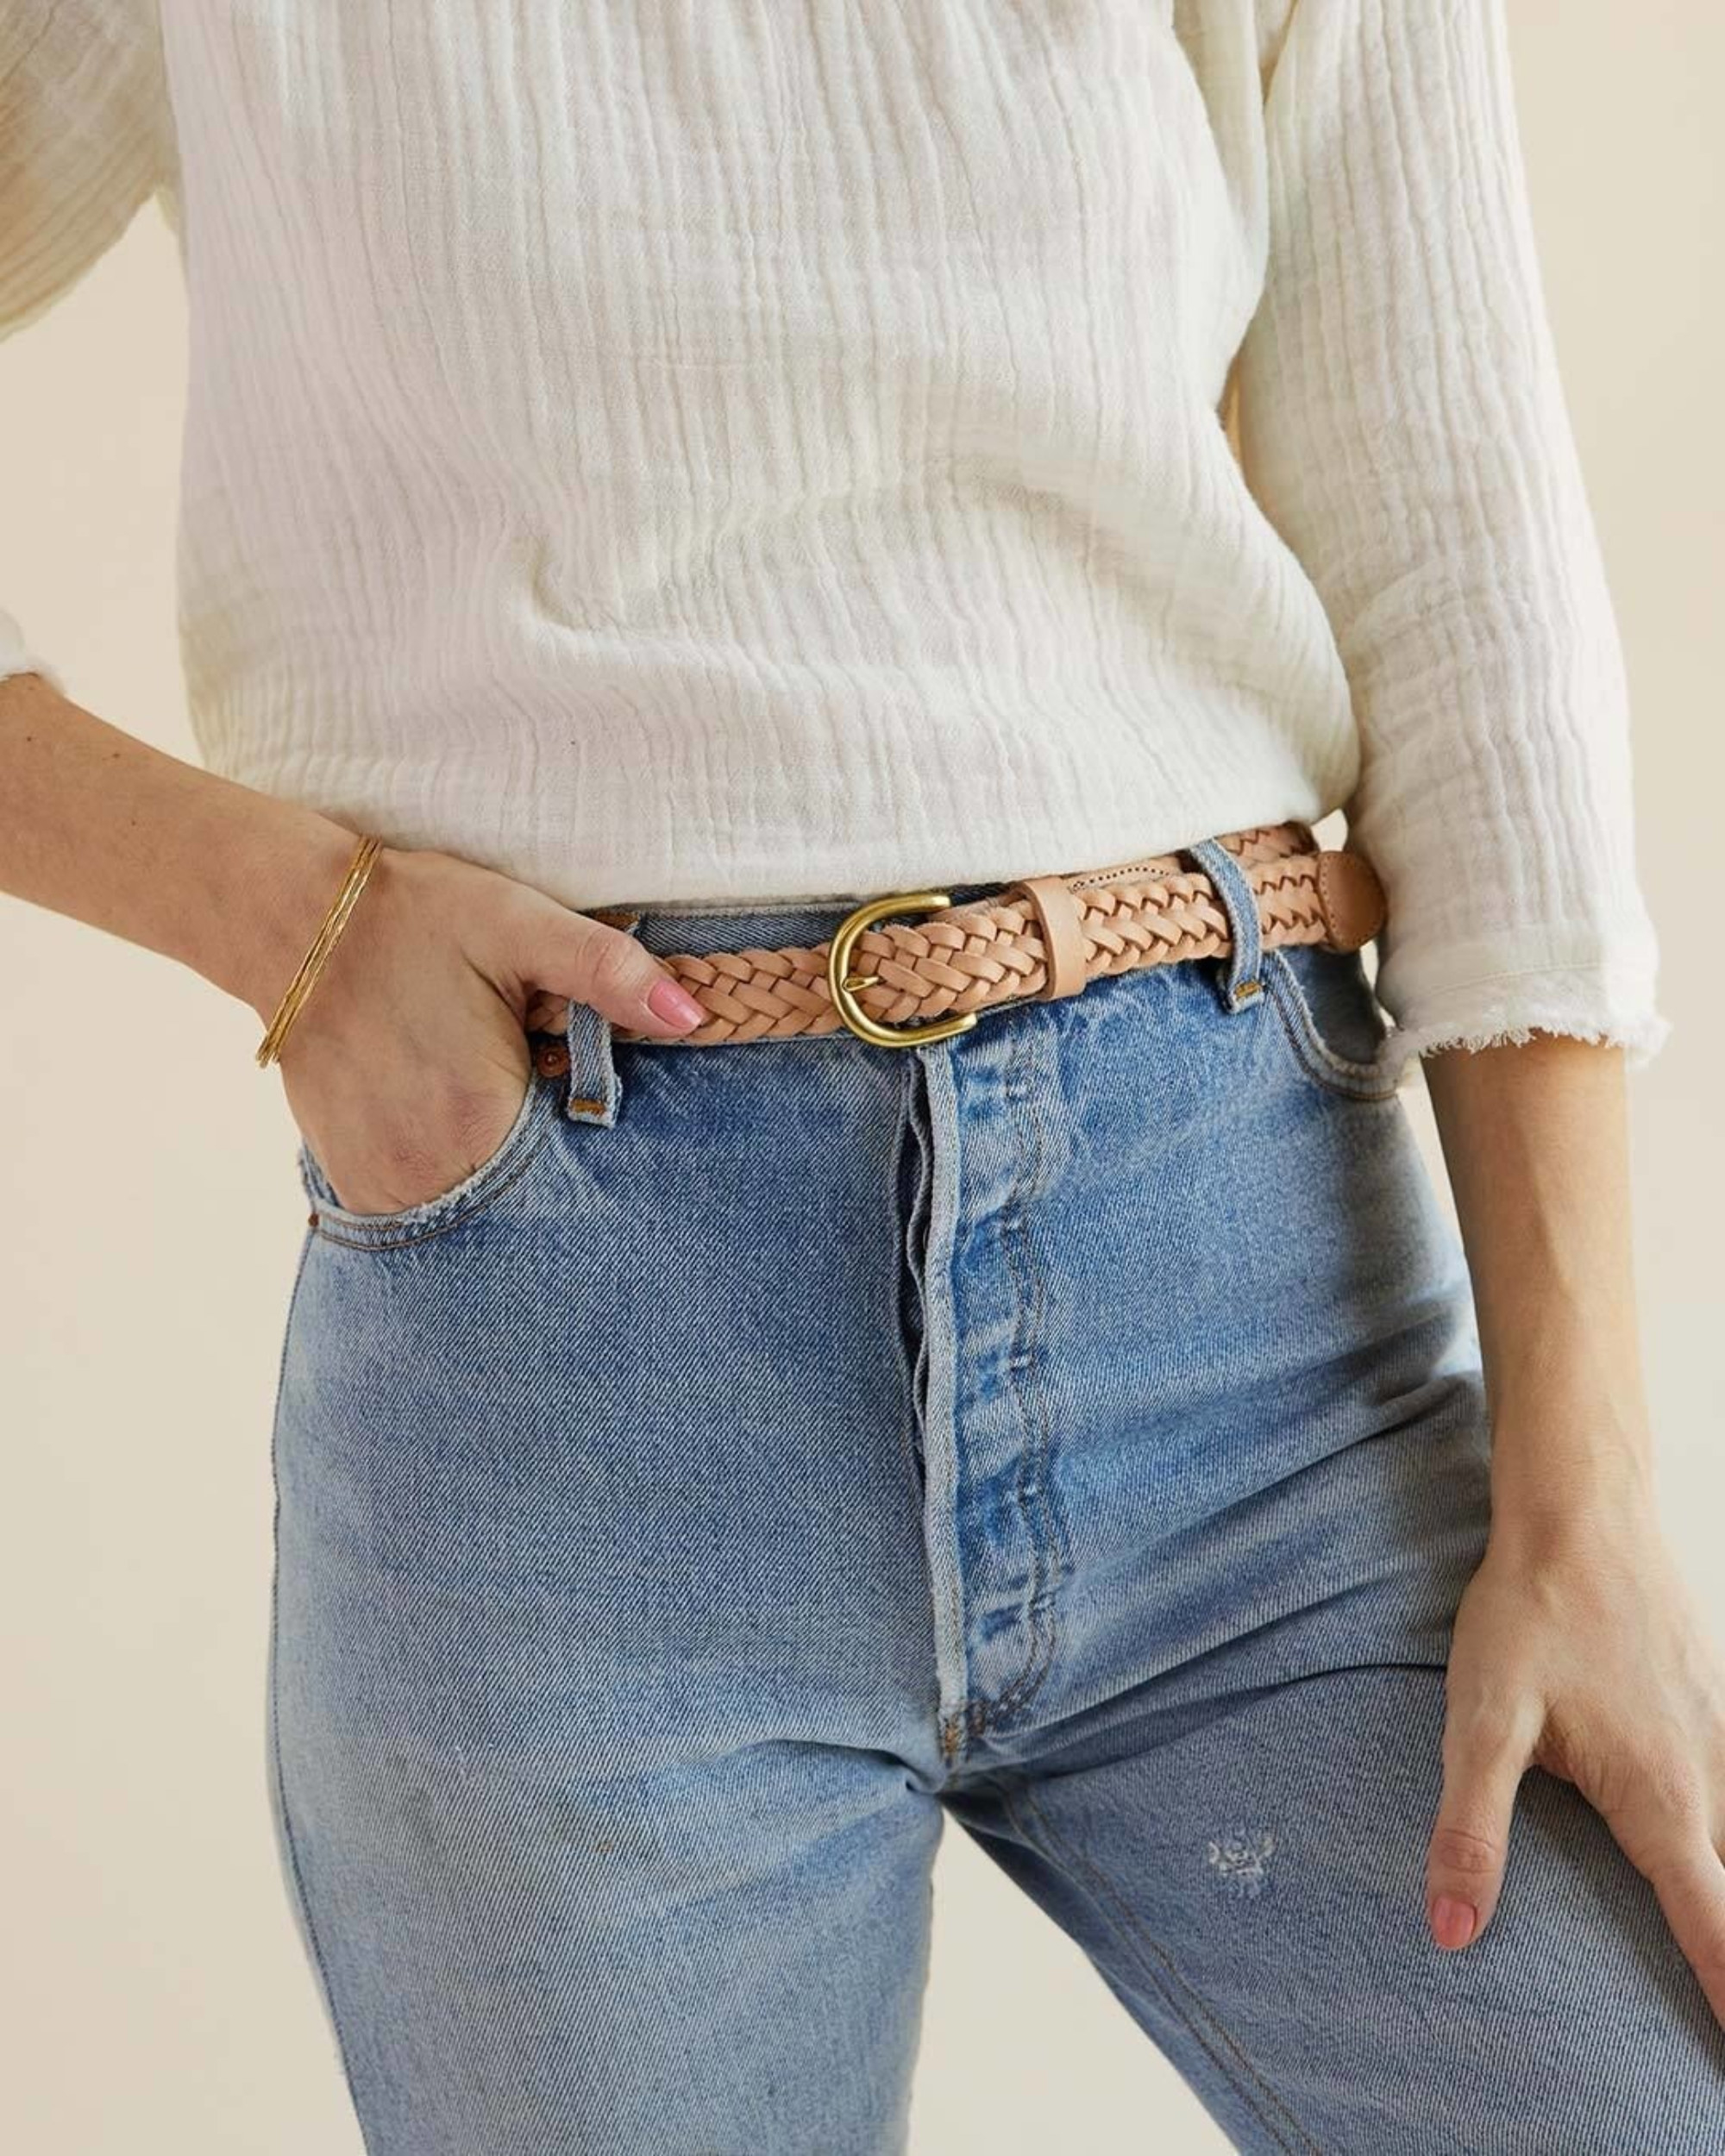 A model wearing the tan braided belt with a gold buckle with jeans